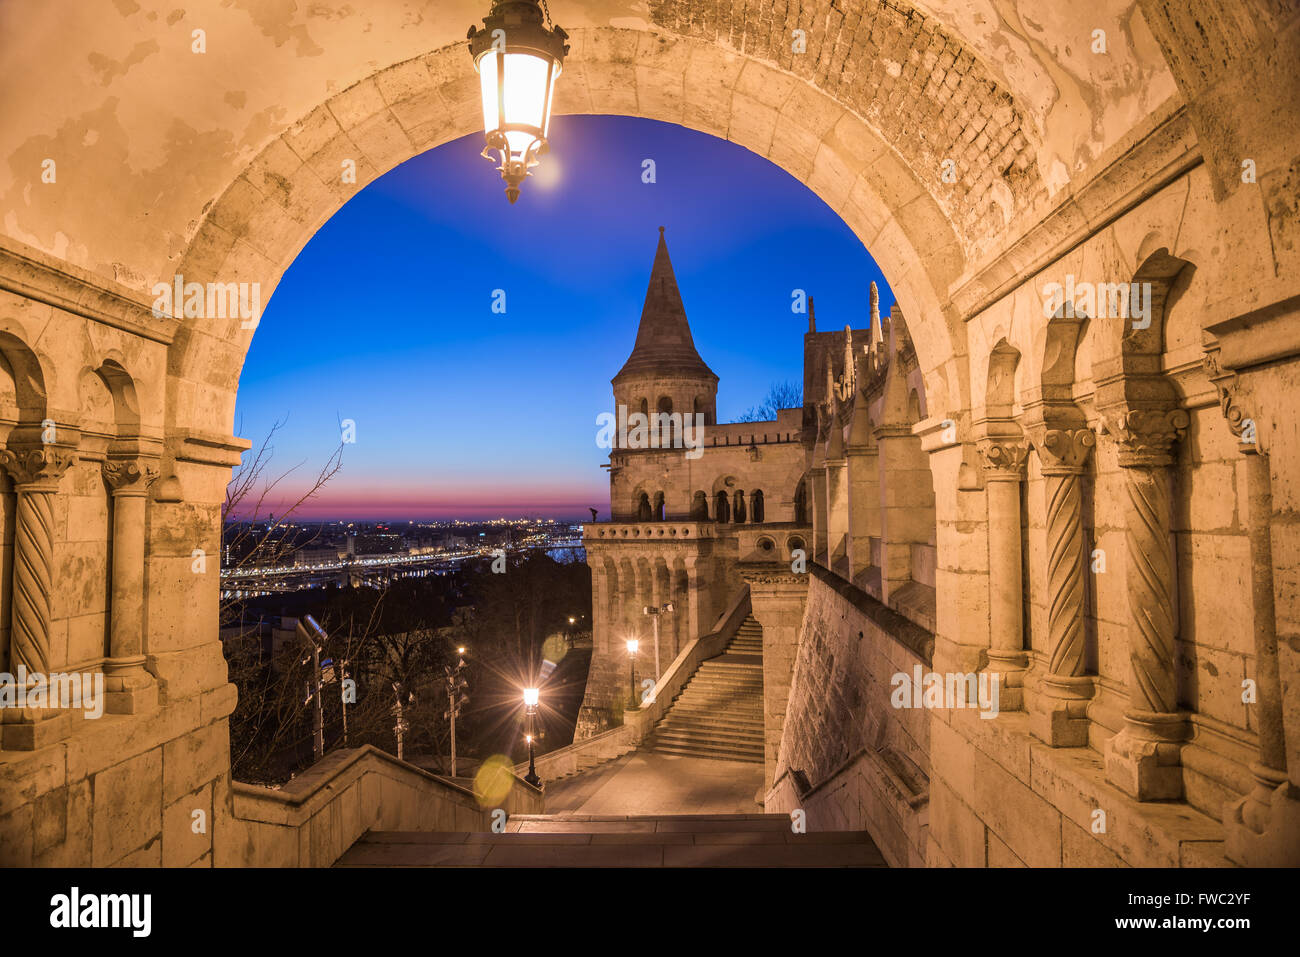 North Gate of Fisherman's Bastion in Budapest, Hungary Illuminated at Dawn - Stock Image